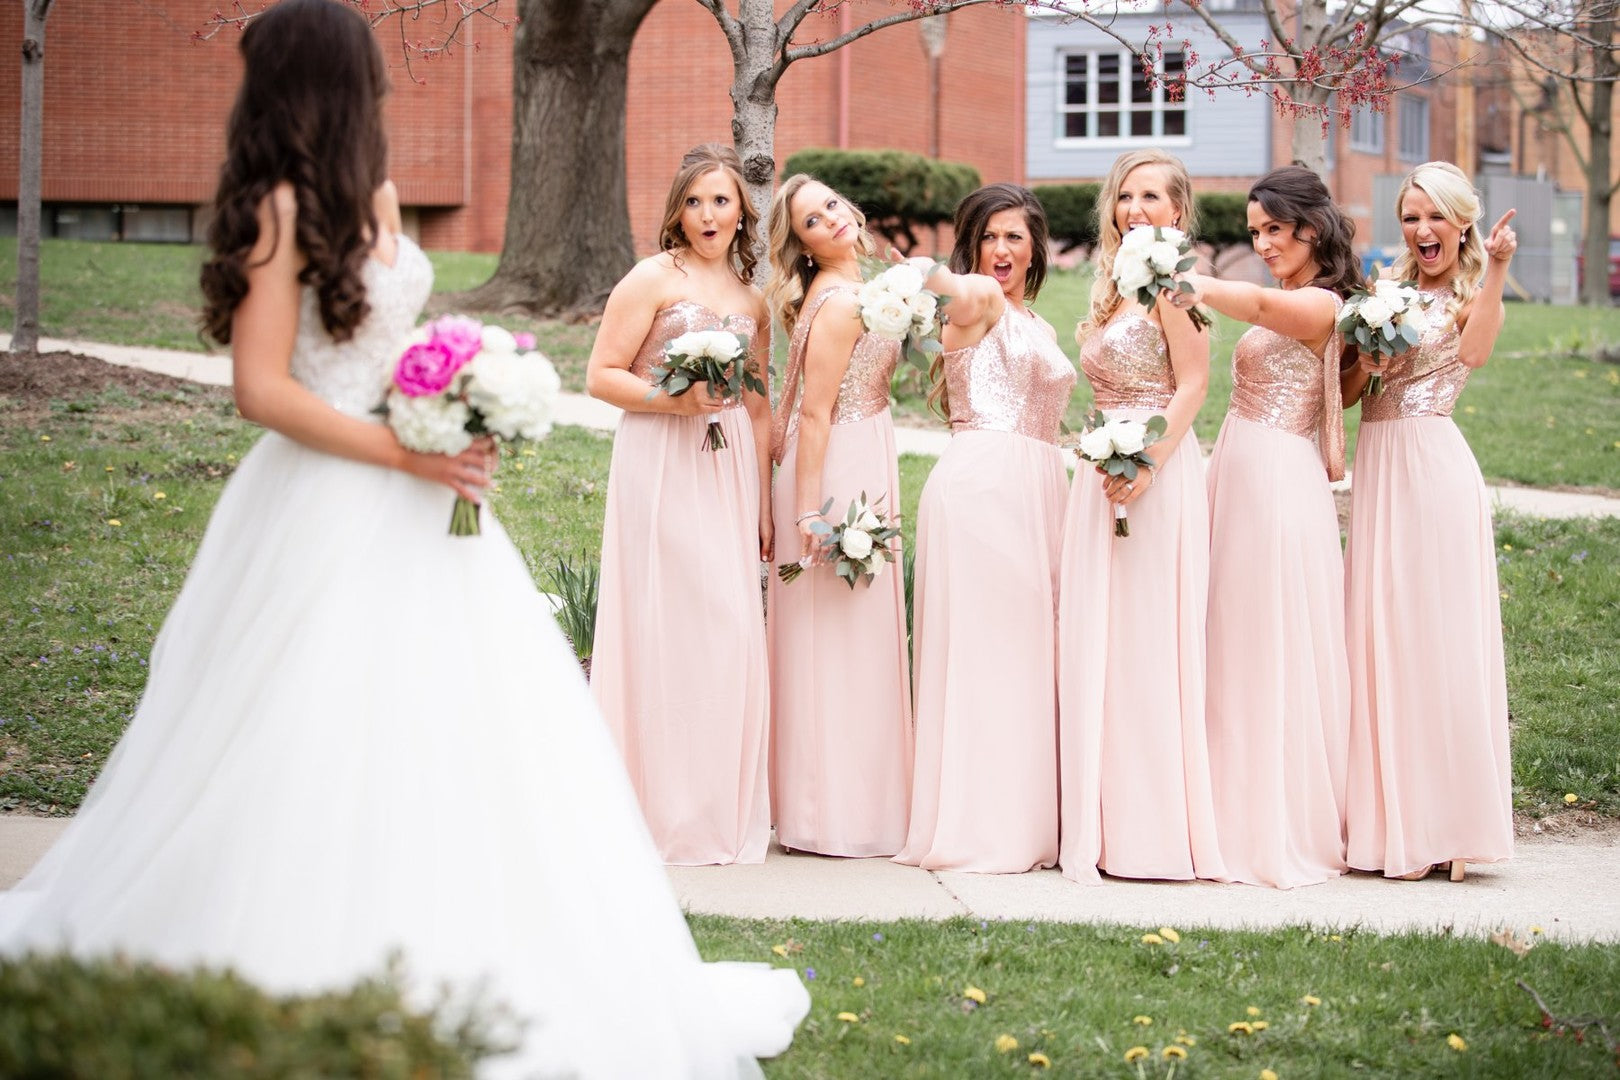 Bridesmaids Cheering On Bride | A Gorgeous Grand Wedding in Ohio | Kate Aspen